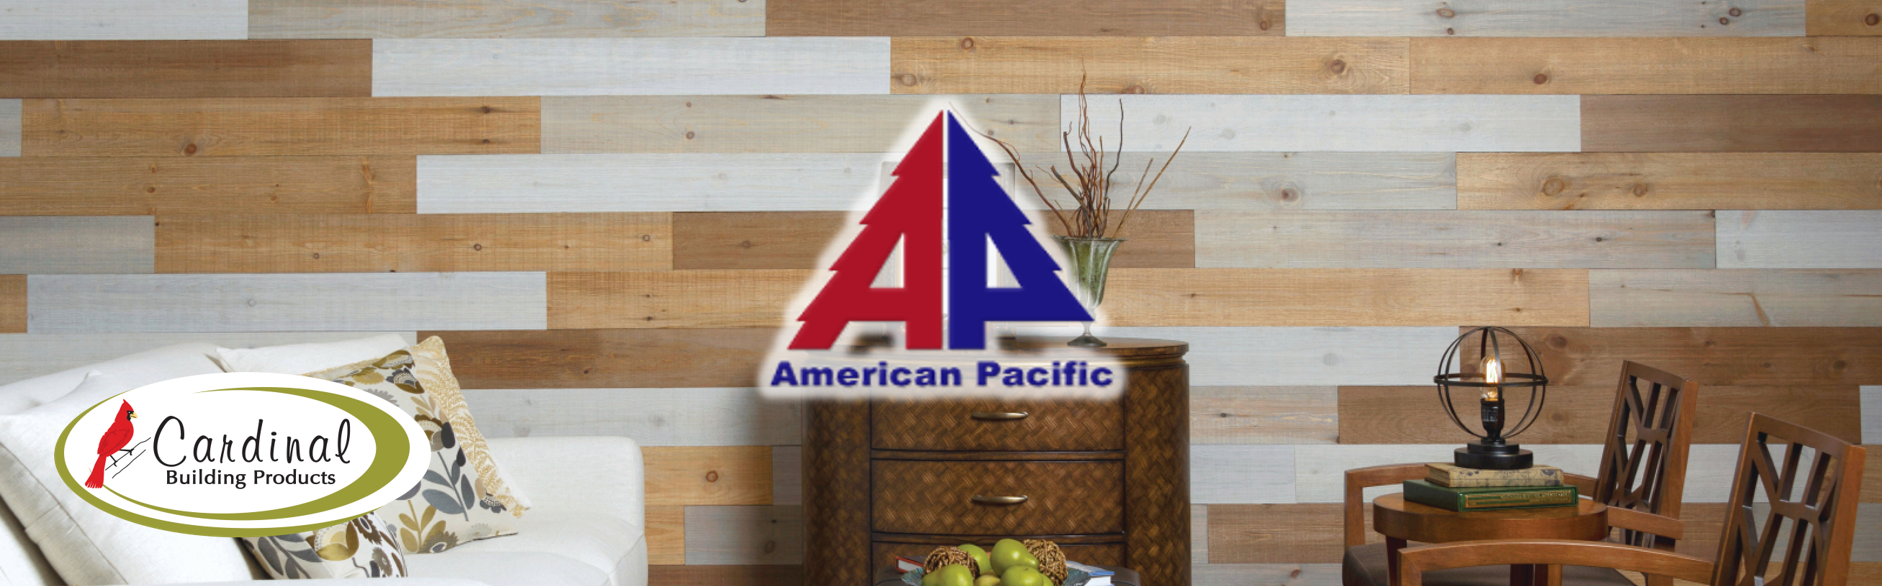 AmericanPacific - Cardinal Building Products